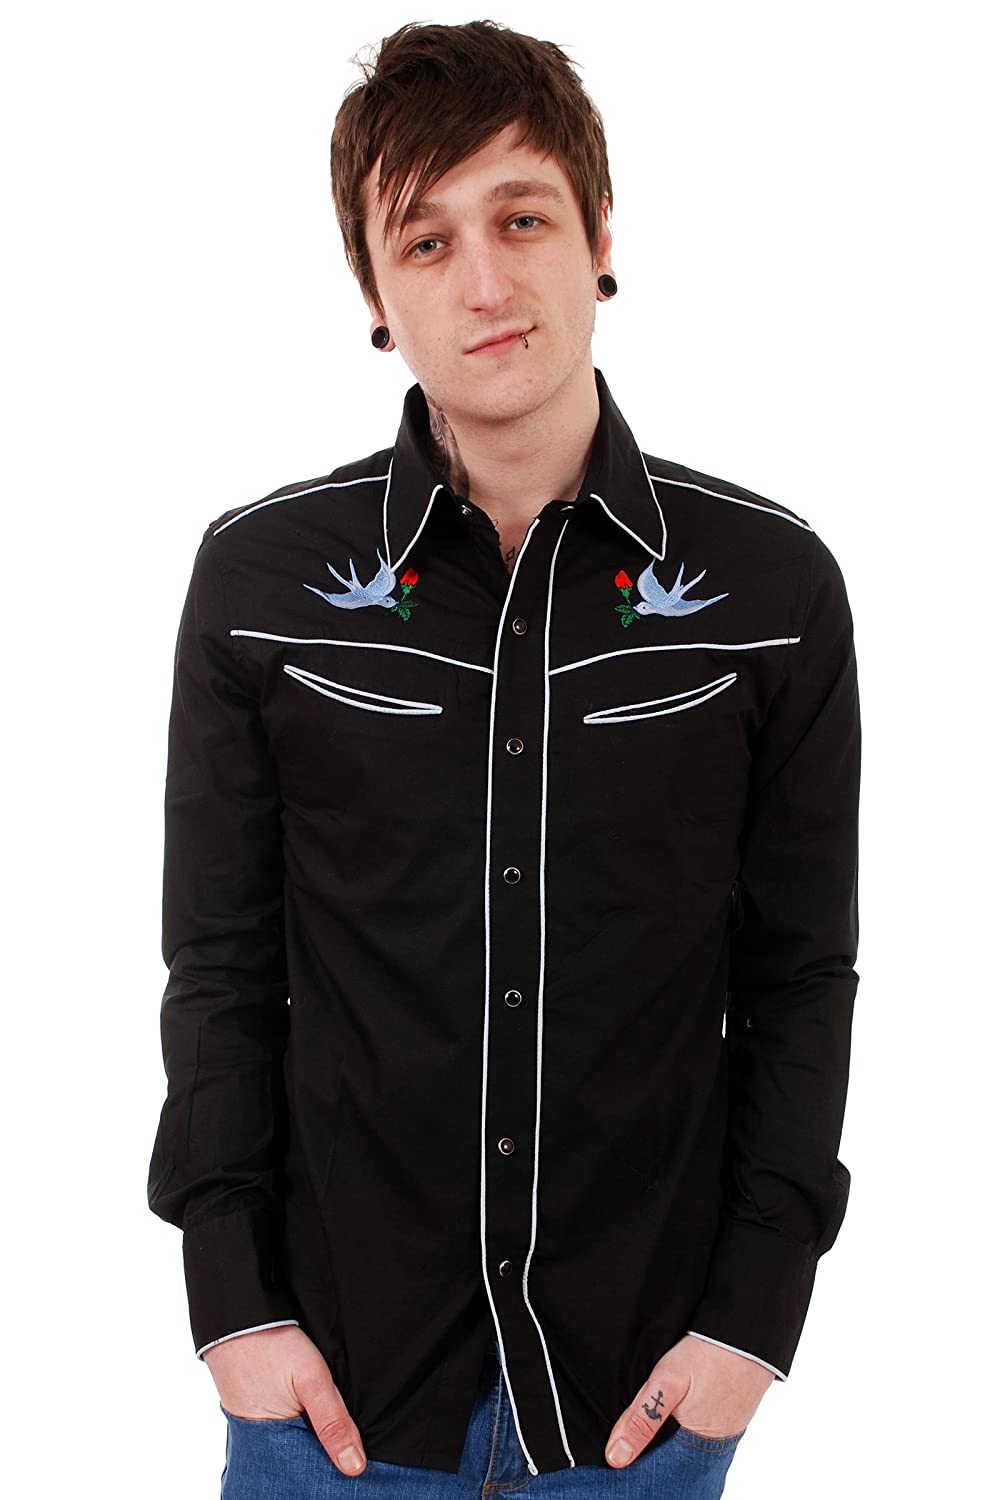 1950s Style Mens Shirts Run & Fly Mens 50s 60s Tattoo Swallows Rockabilly Western Rodeo Shirt $39.95 AT vintagedancer.com